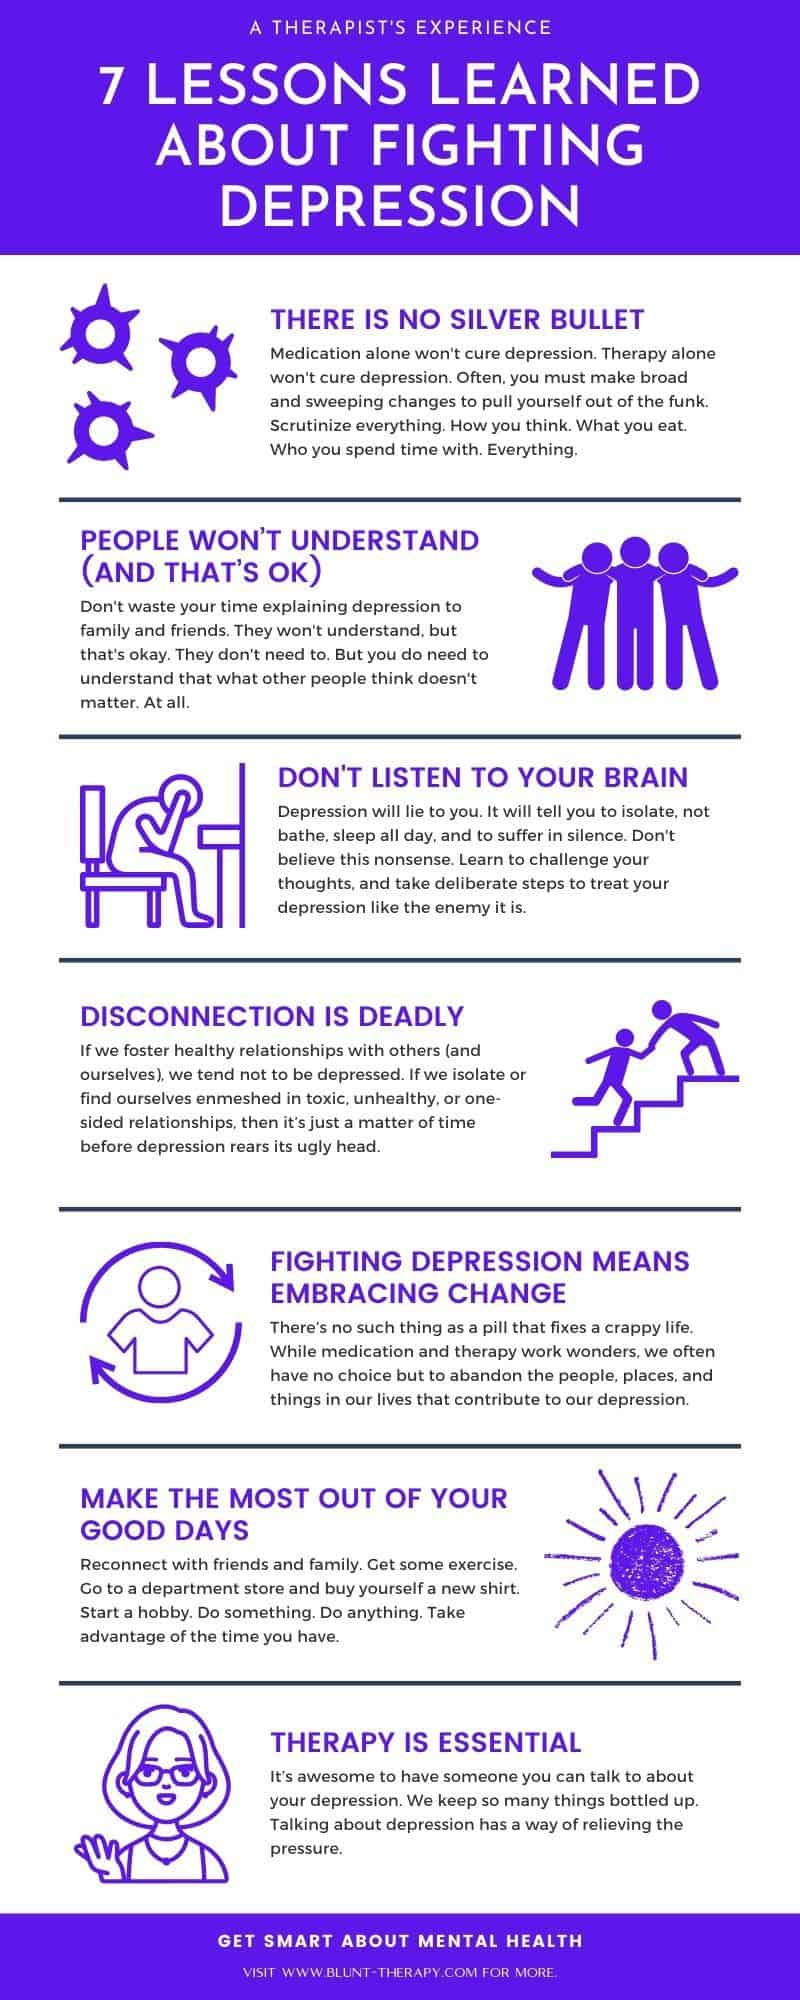 7 lessons learned about fighting depression